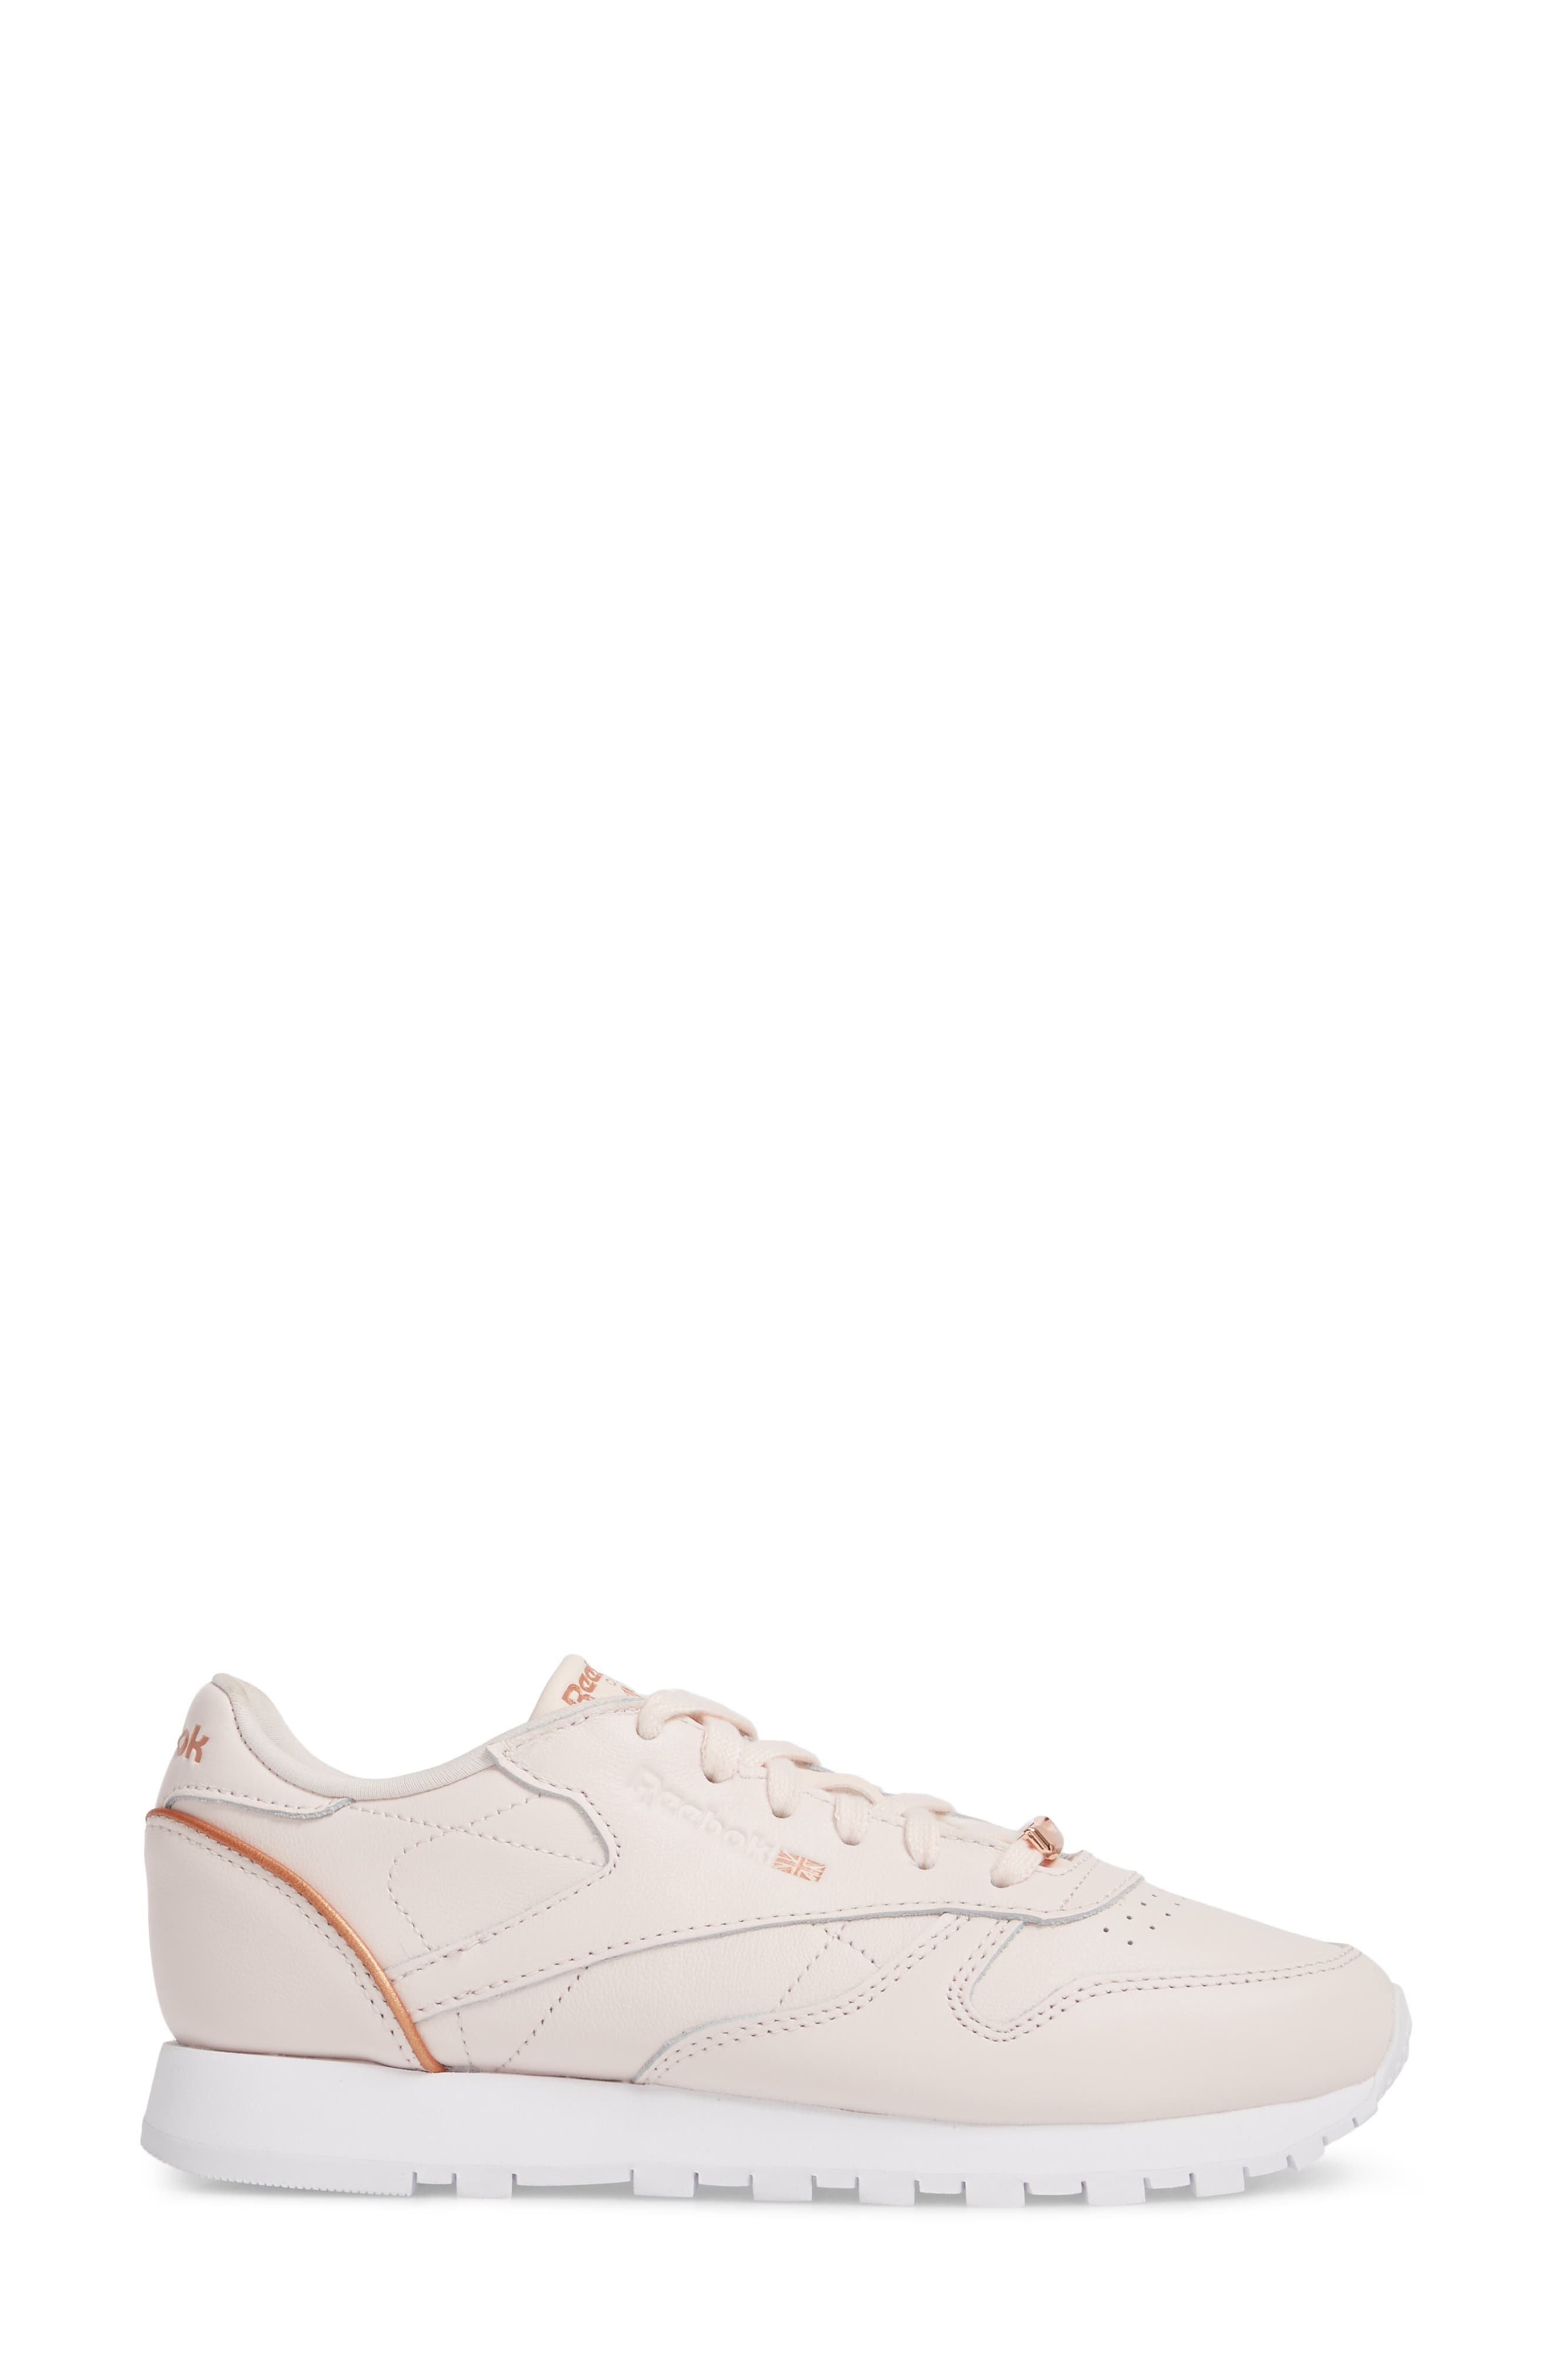 Classic Leather HW Sneaker,                             Alternate thumbnail 3, color,                             Pale Pink/ White/ Rose Gold